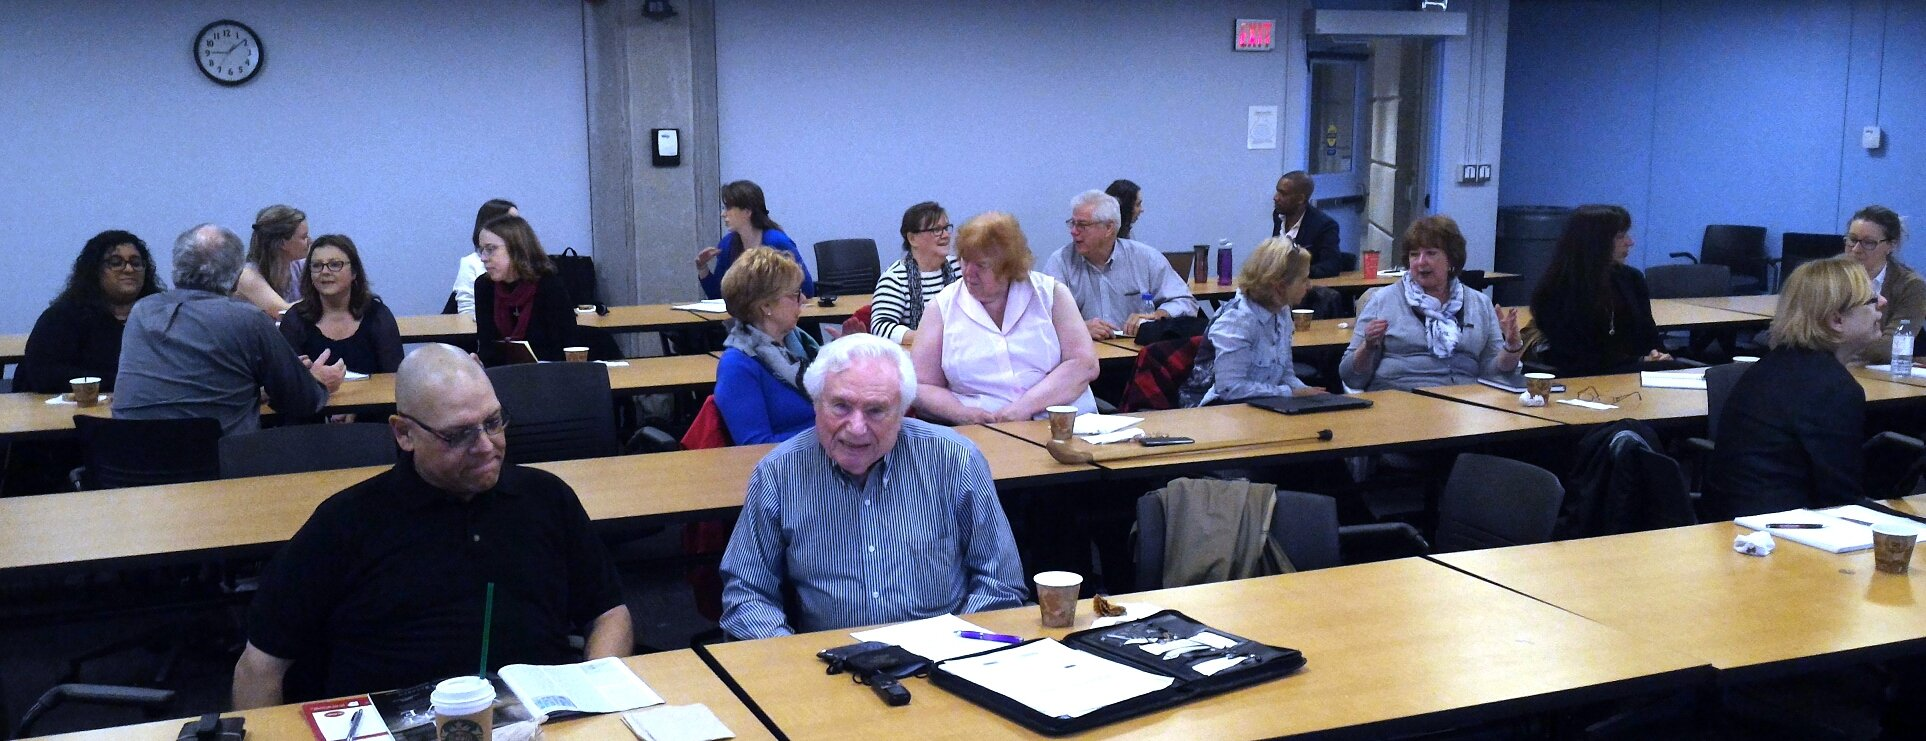 Attendees at the Managing Small Archives workshop. We're all learning a lot from each other! #aao17conf https://t.co/cyV7QMGsxa